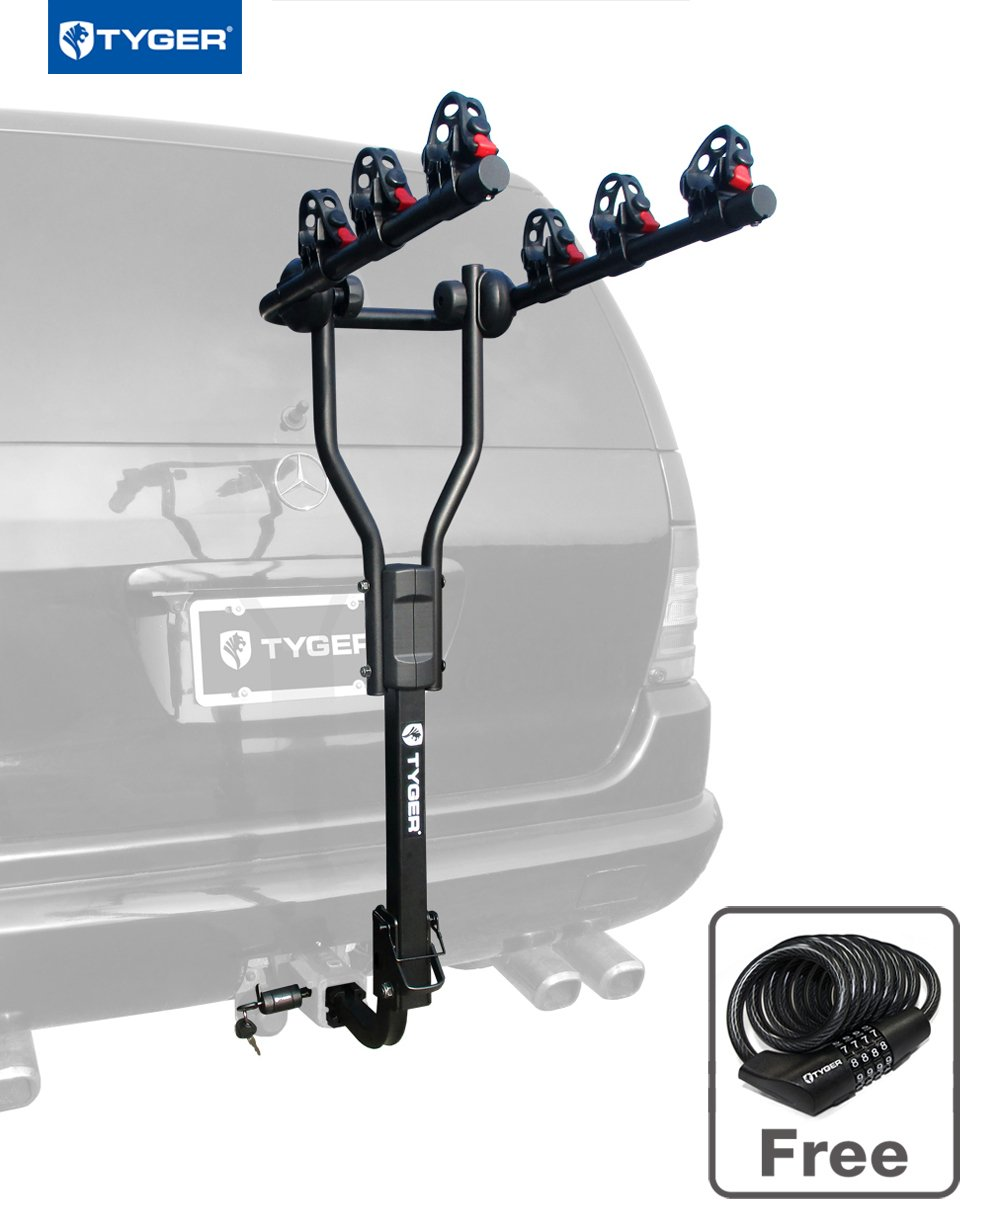 Tyger Auto Tyger Deluxe Carrier Rack Fits Both 1 1/4 2'' Hitch Receiver Hitch Pin Lock & Cable Lock   Soft Cushion Protector